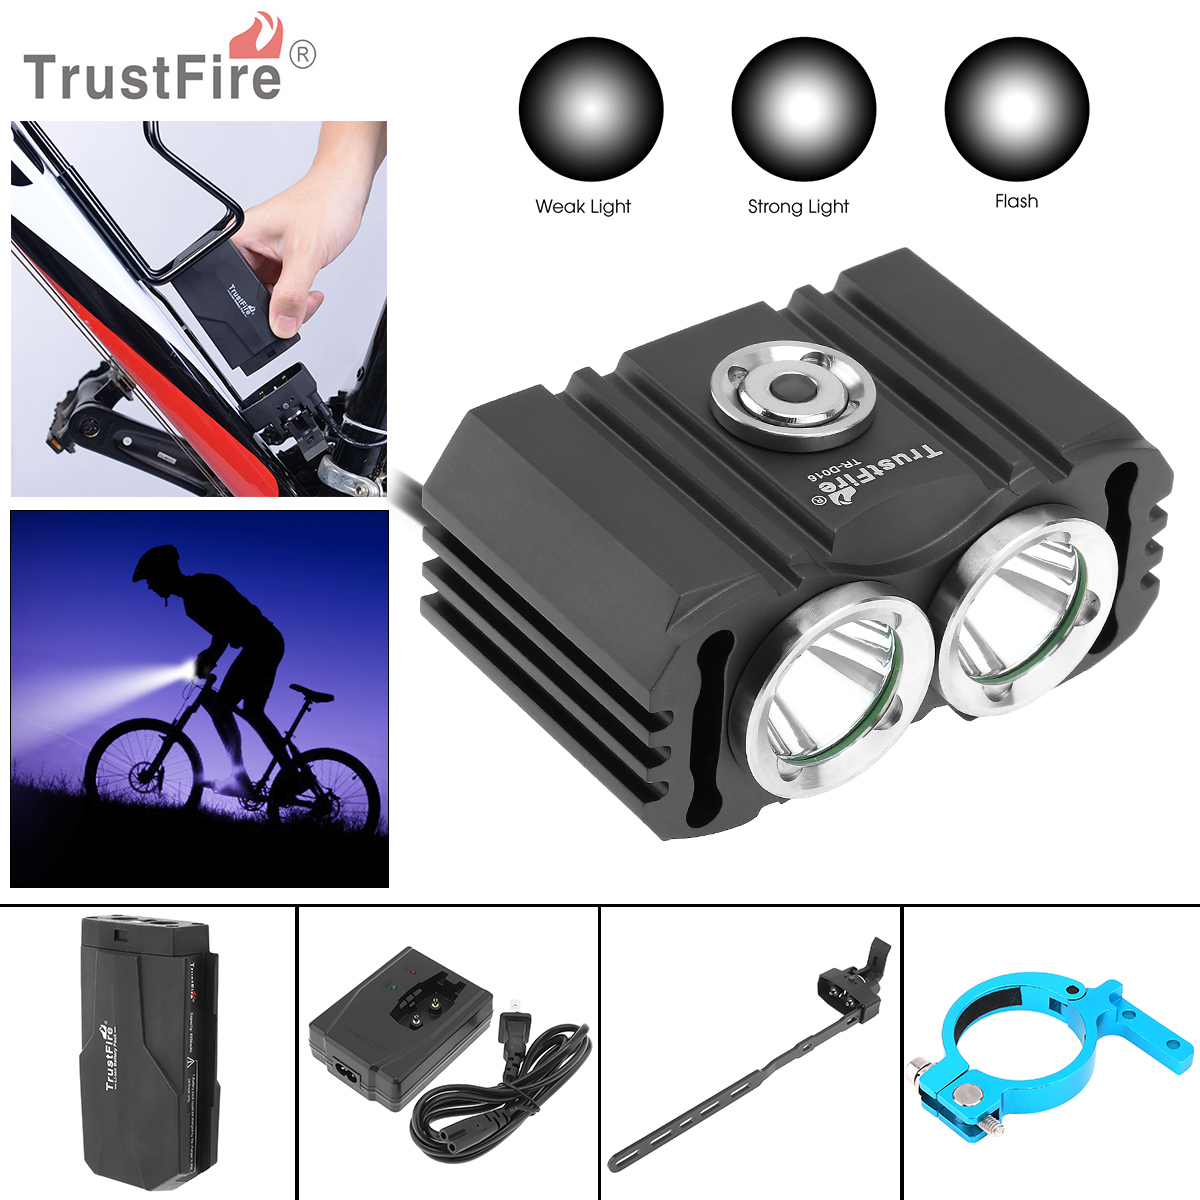 TrustFire Waterproof 2500 lumens 2x XM-L2 LED Bicycle Head Light with 3 Modes Light + 6200mAh Battery Pack+Charger trustfire tr d017 usb bike light 2000 lumens 3 mode xm l l2 led bicycle front light with battery pack for cycling